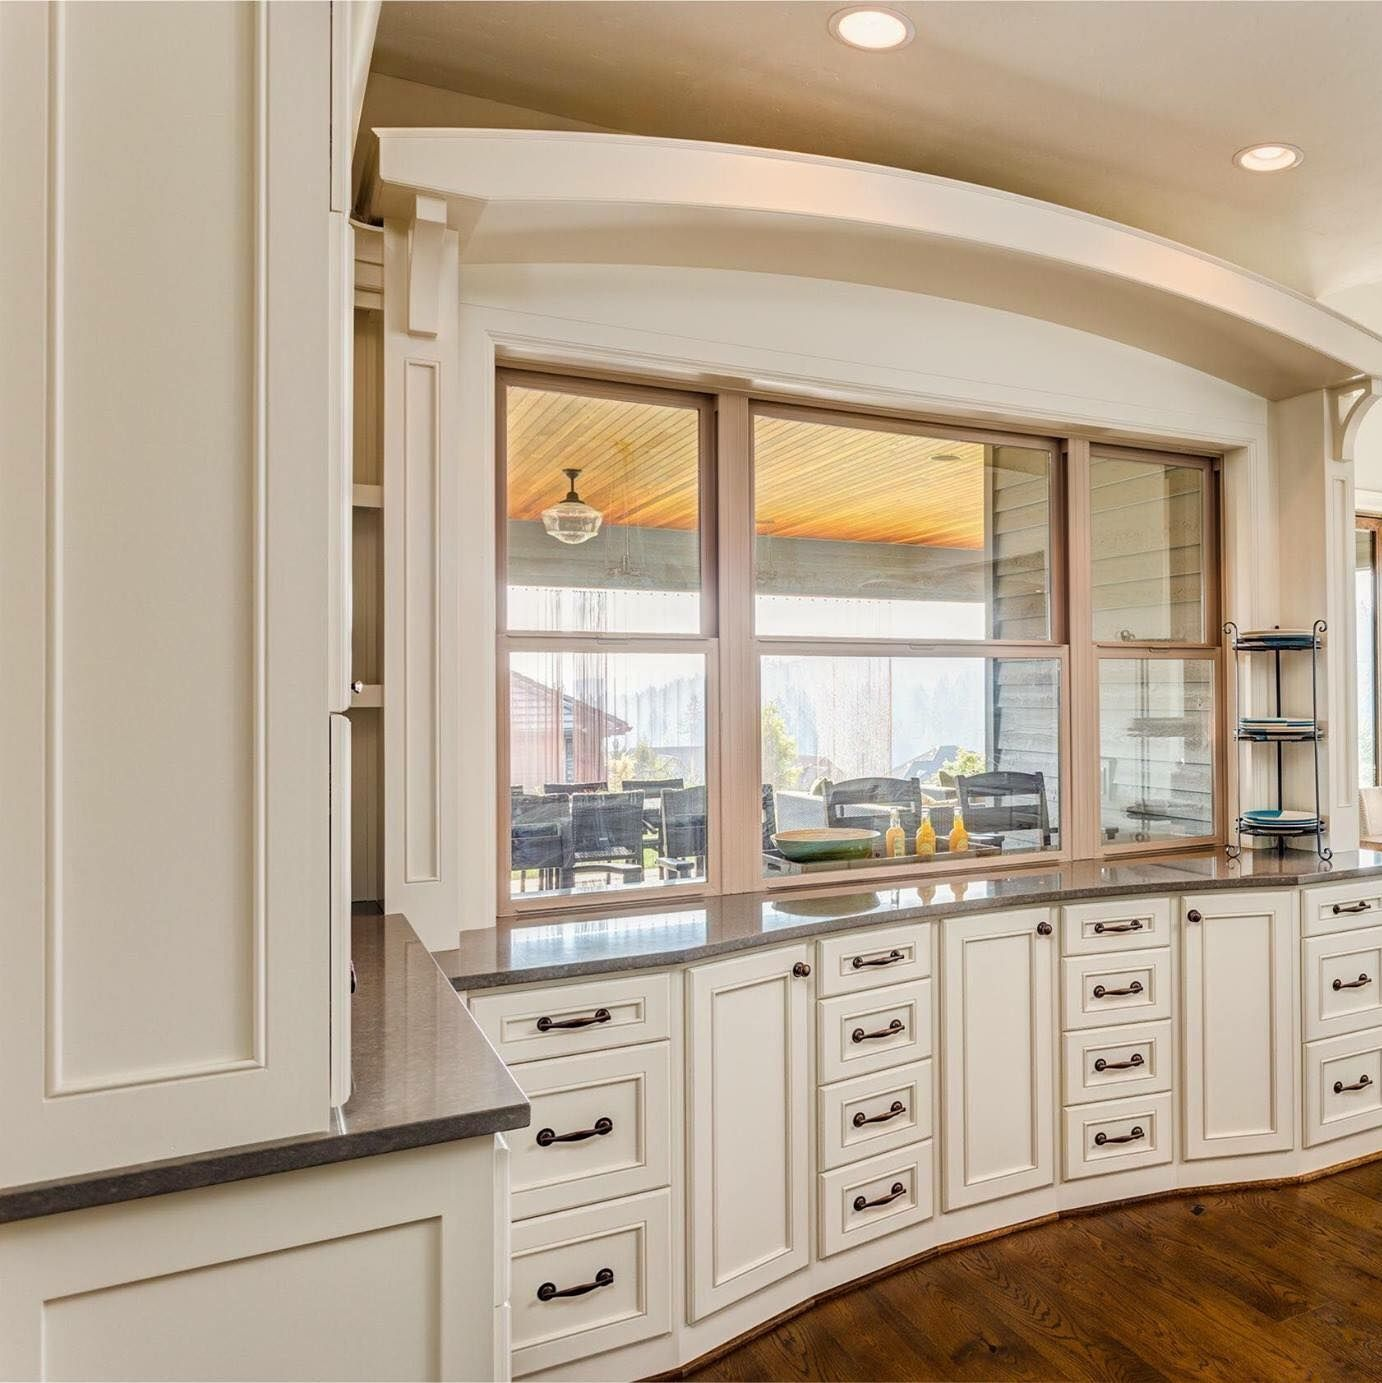 Best White Kitchens Off White Kitchens Are Trendy In 2017 400 x 300